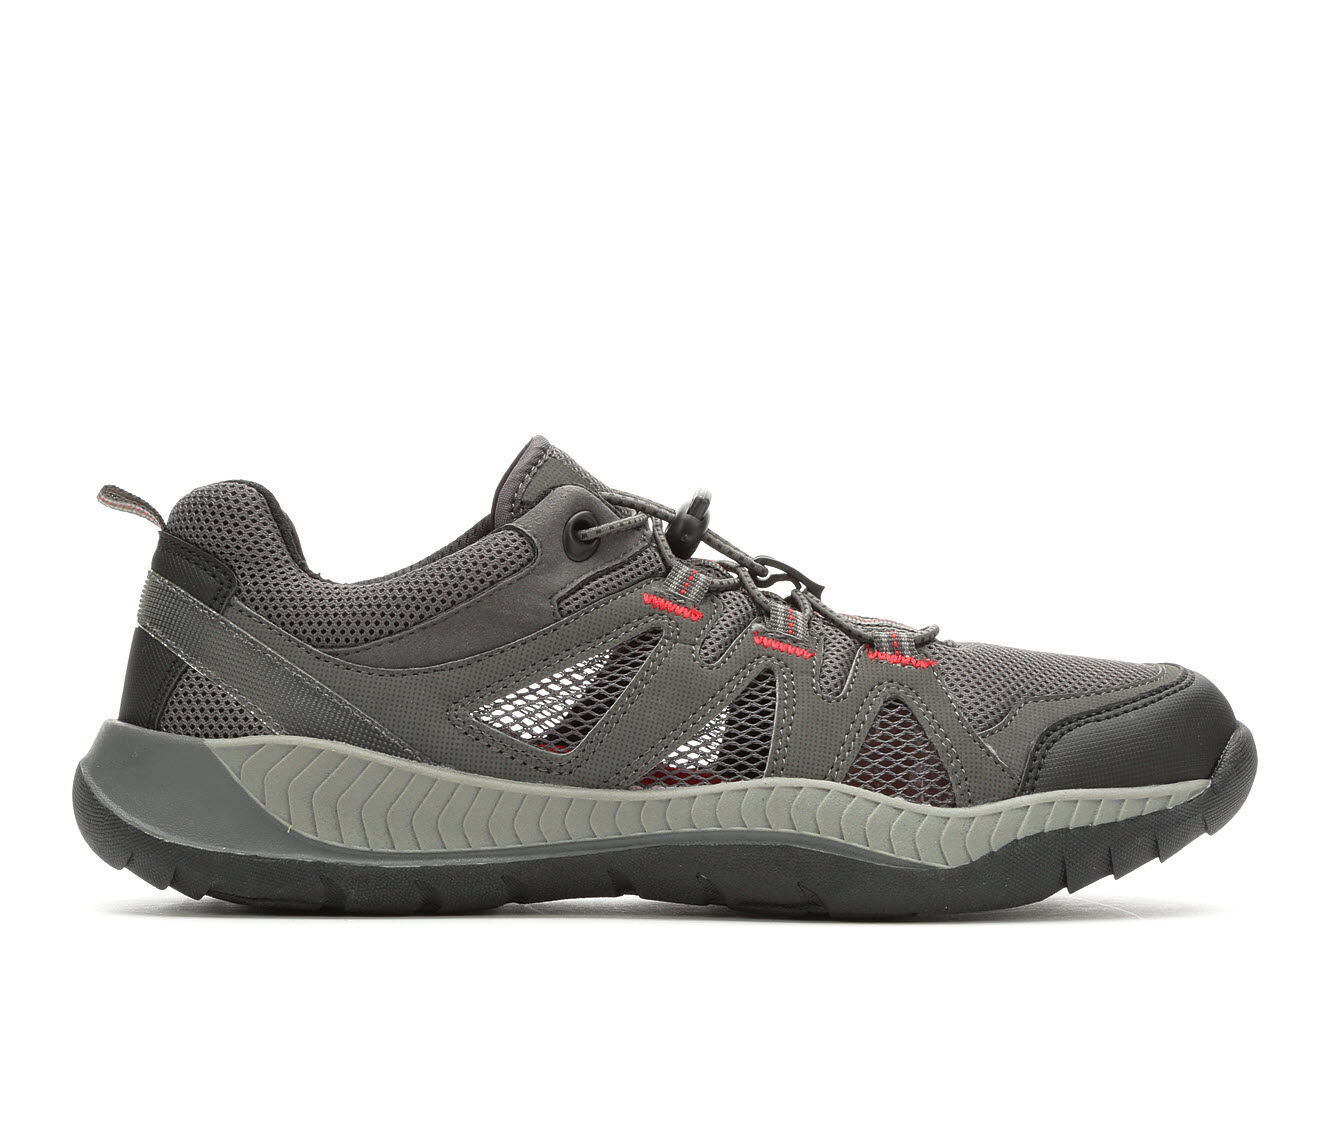 Men's Gotcha Rowan Outdoor Shoes Grey